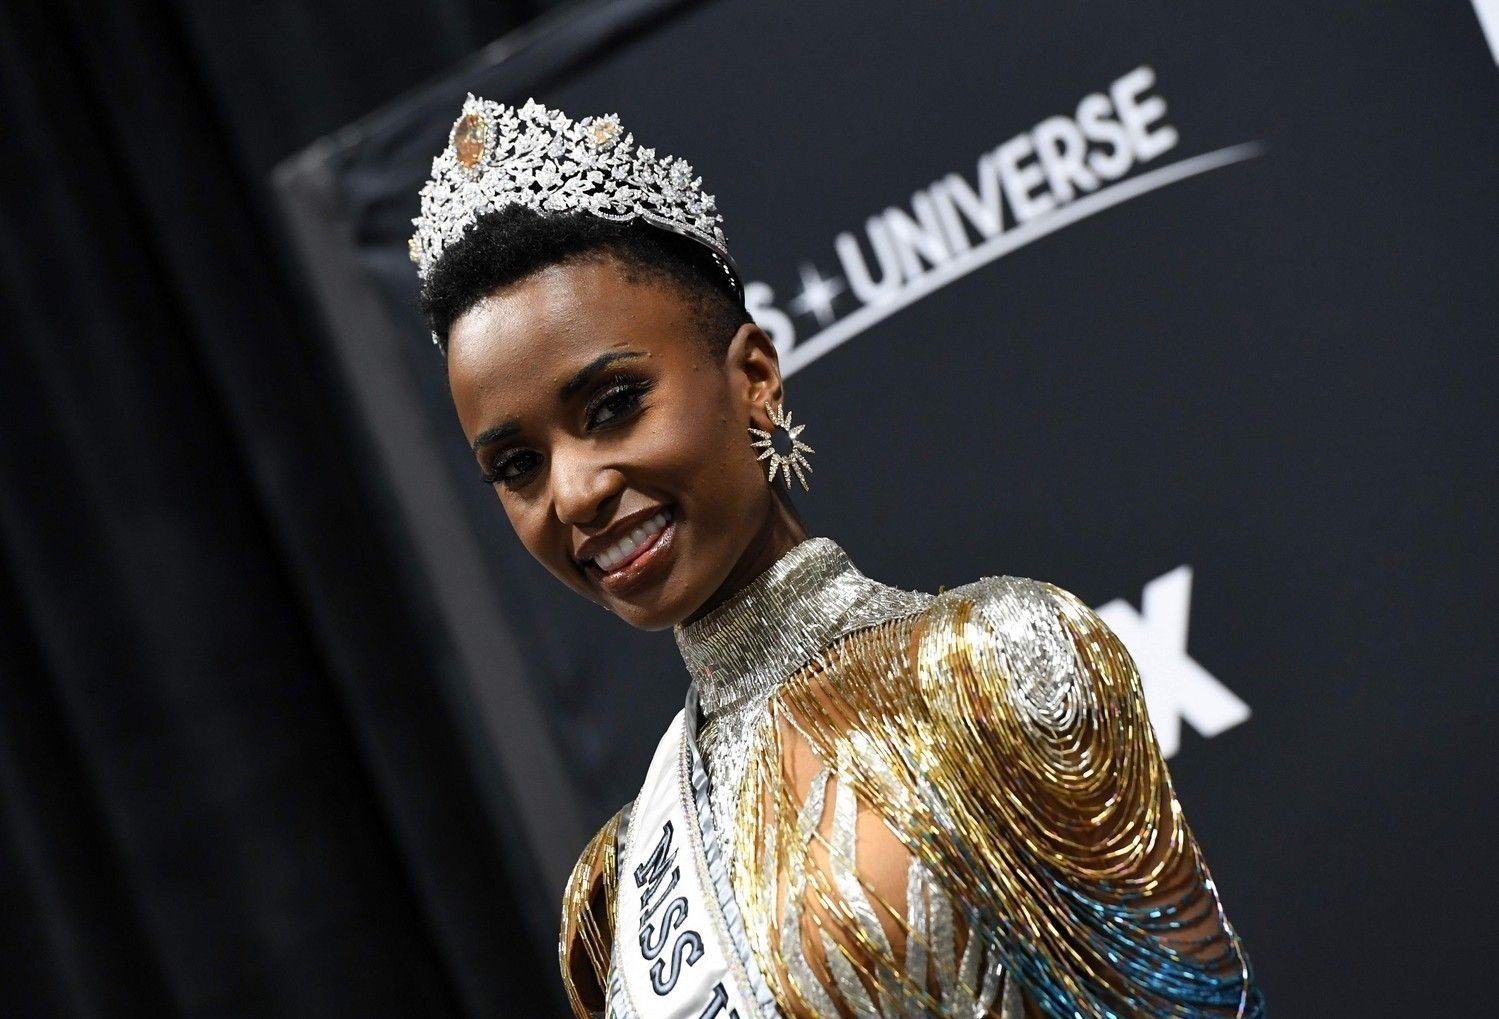 Miss Universe beauty pageant Newly crowned Miss Universe 2019 South Africa's Zozibini Tunzi poses during a press conference after the 2019 Miss Universe pageant at the Tyler Perry Studios in Atlanta, Georgia on December 8, 2019.